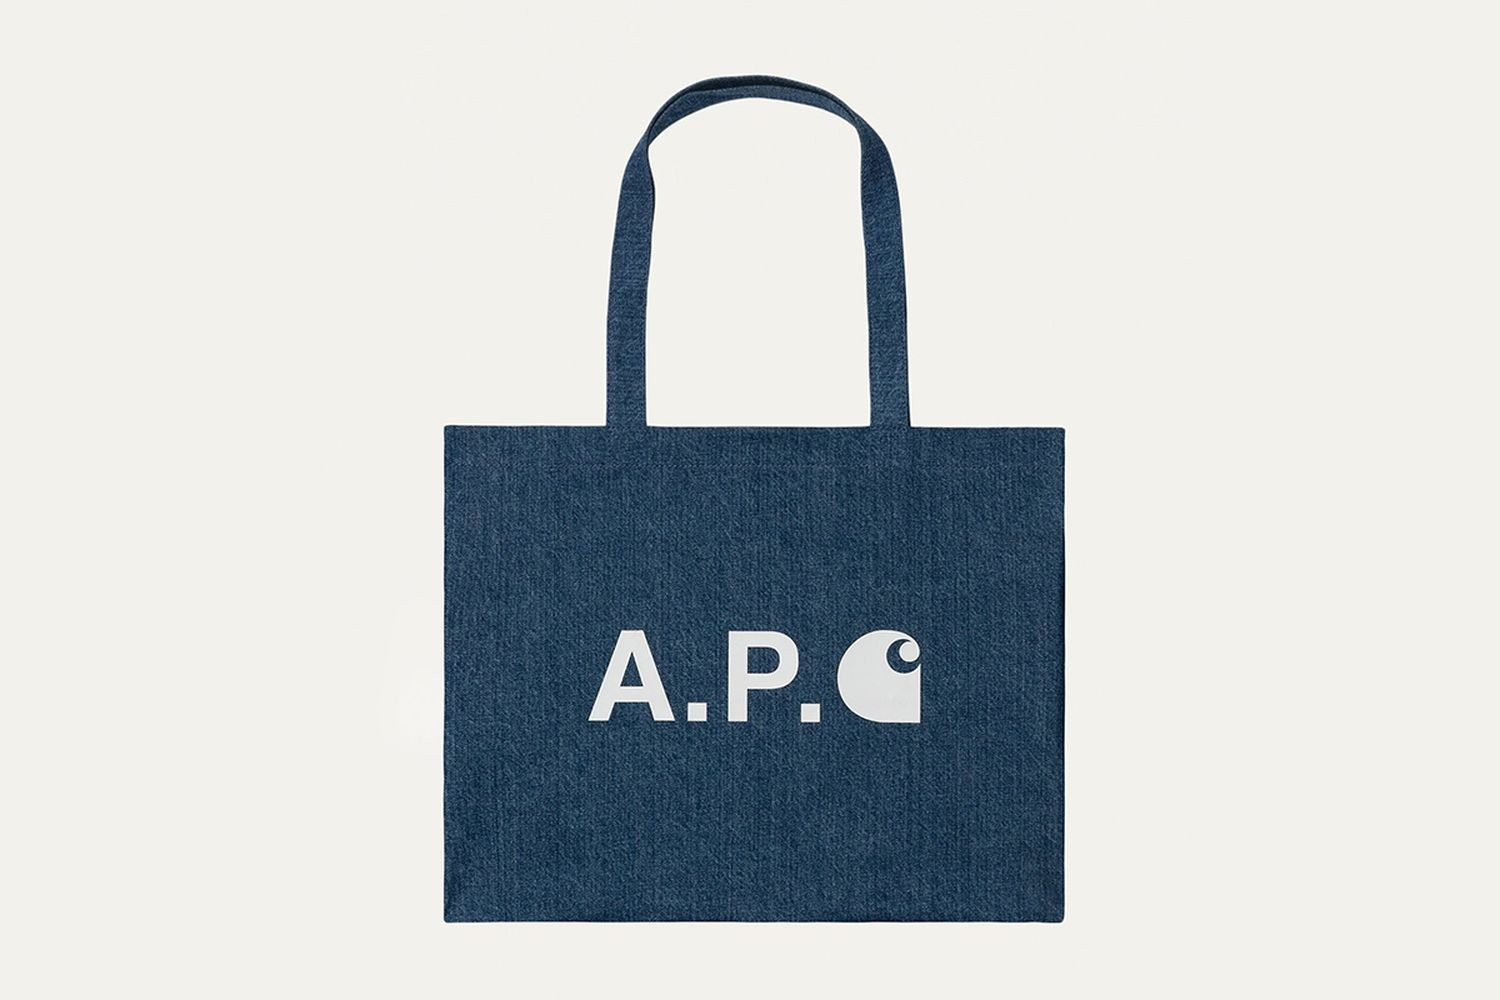 Alan Shopping Bag